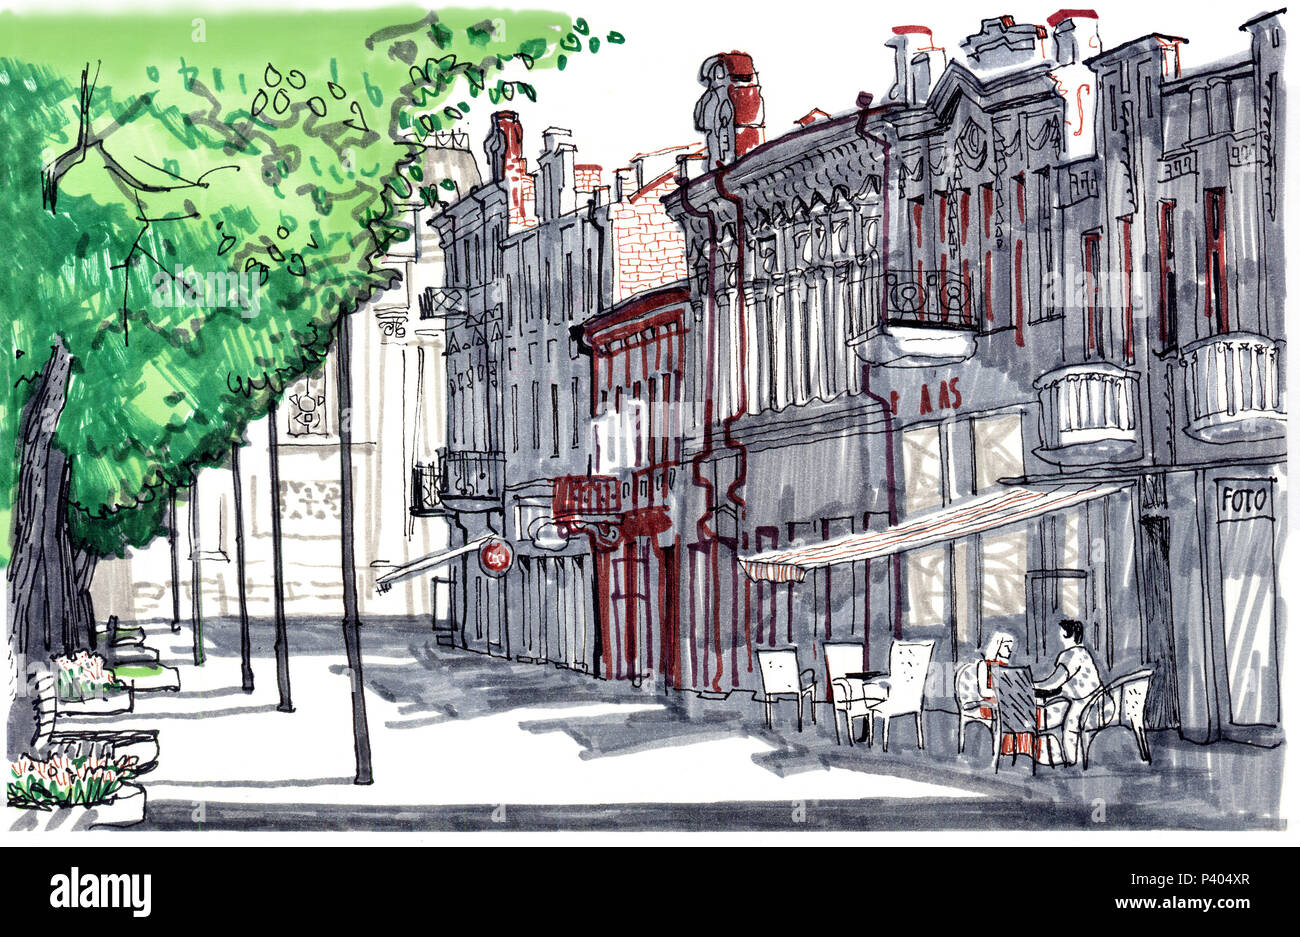 Old town European street. Hand drawn sketch style marker pen illustration. Urban romantic landscape with line of linden trees, cafes, people, old houses, a sunny day. City center of Kaunas, Lithuania. - Stock Image